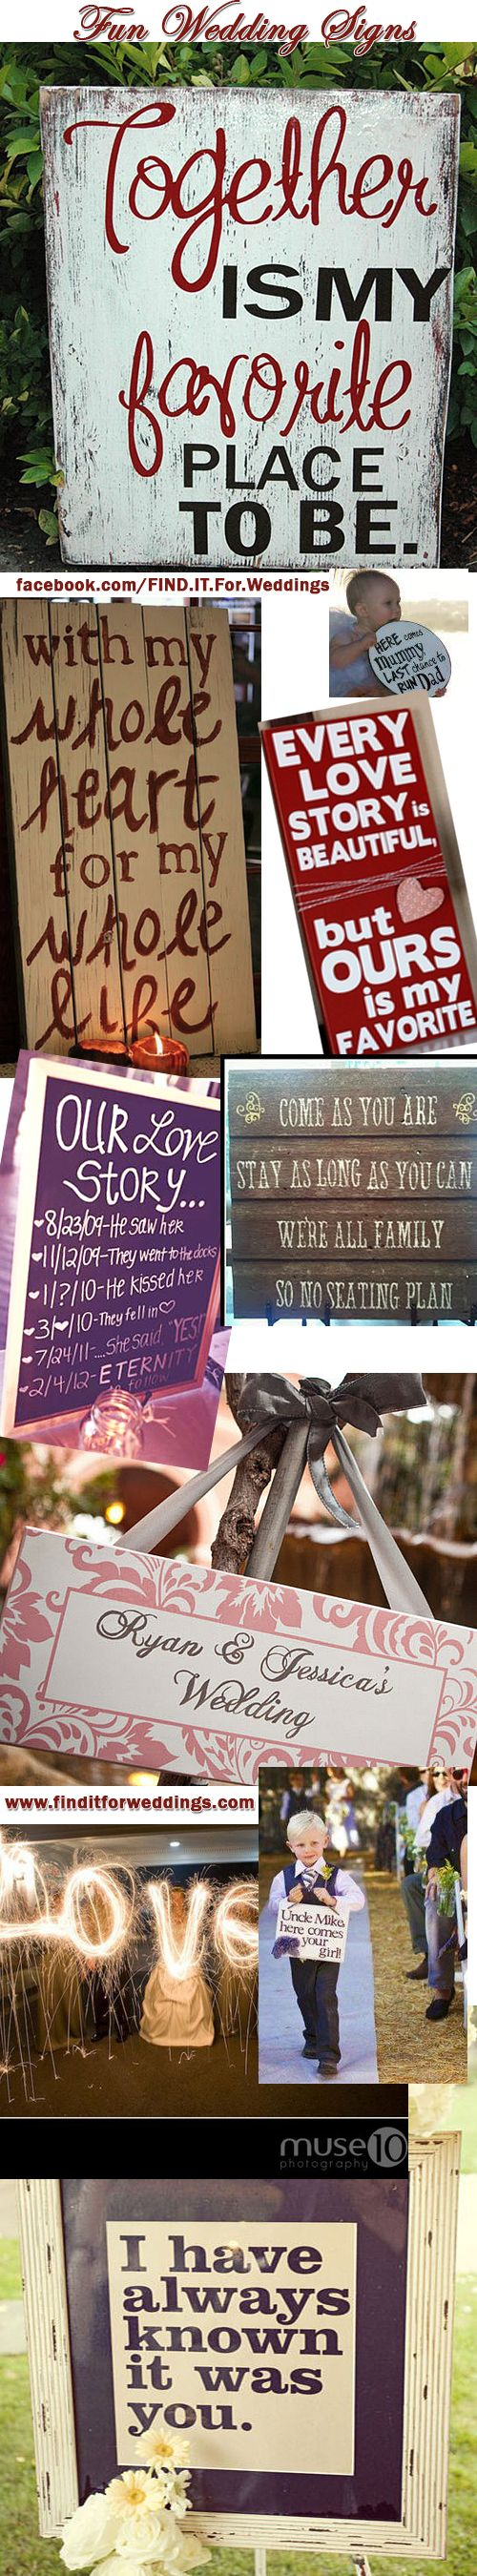 #wedding #signs can add great fun to your day. Make them personal www.finditforweddings.com